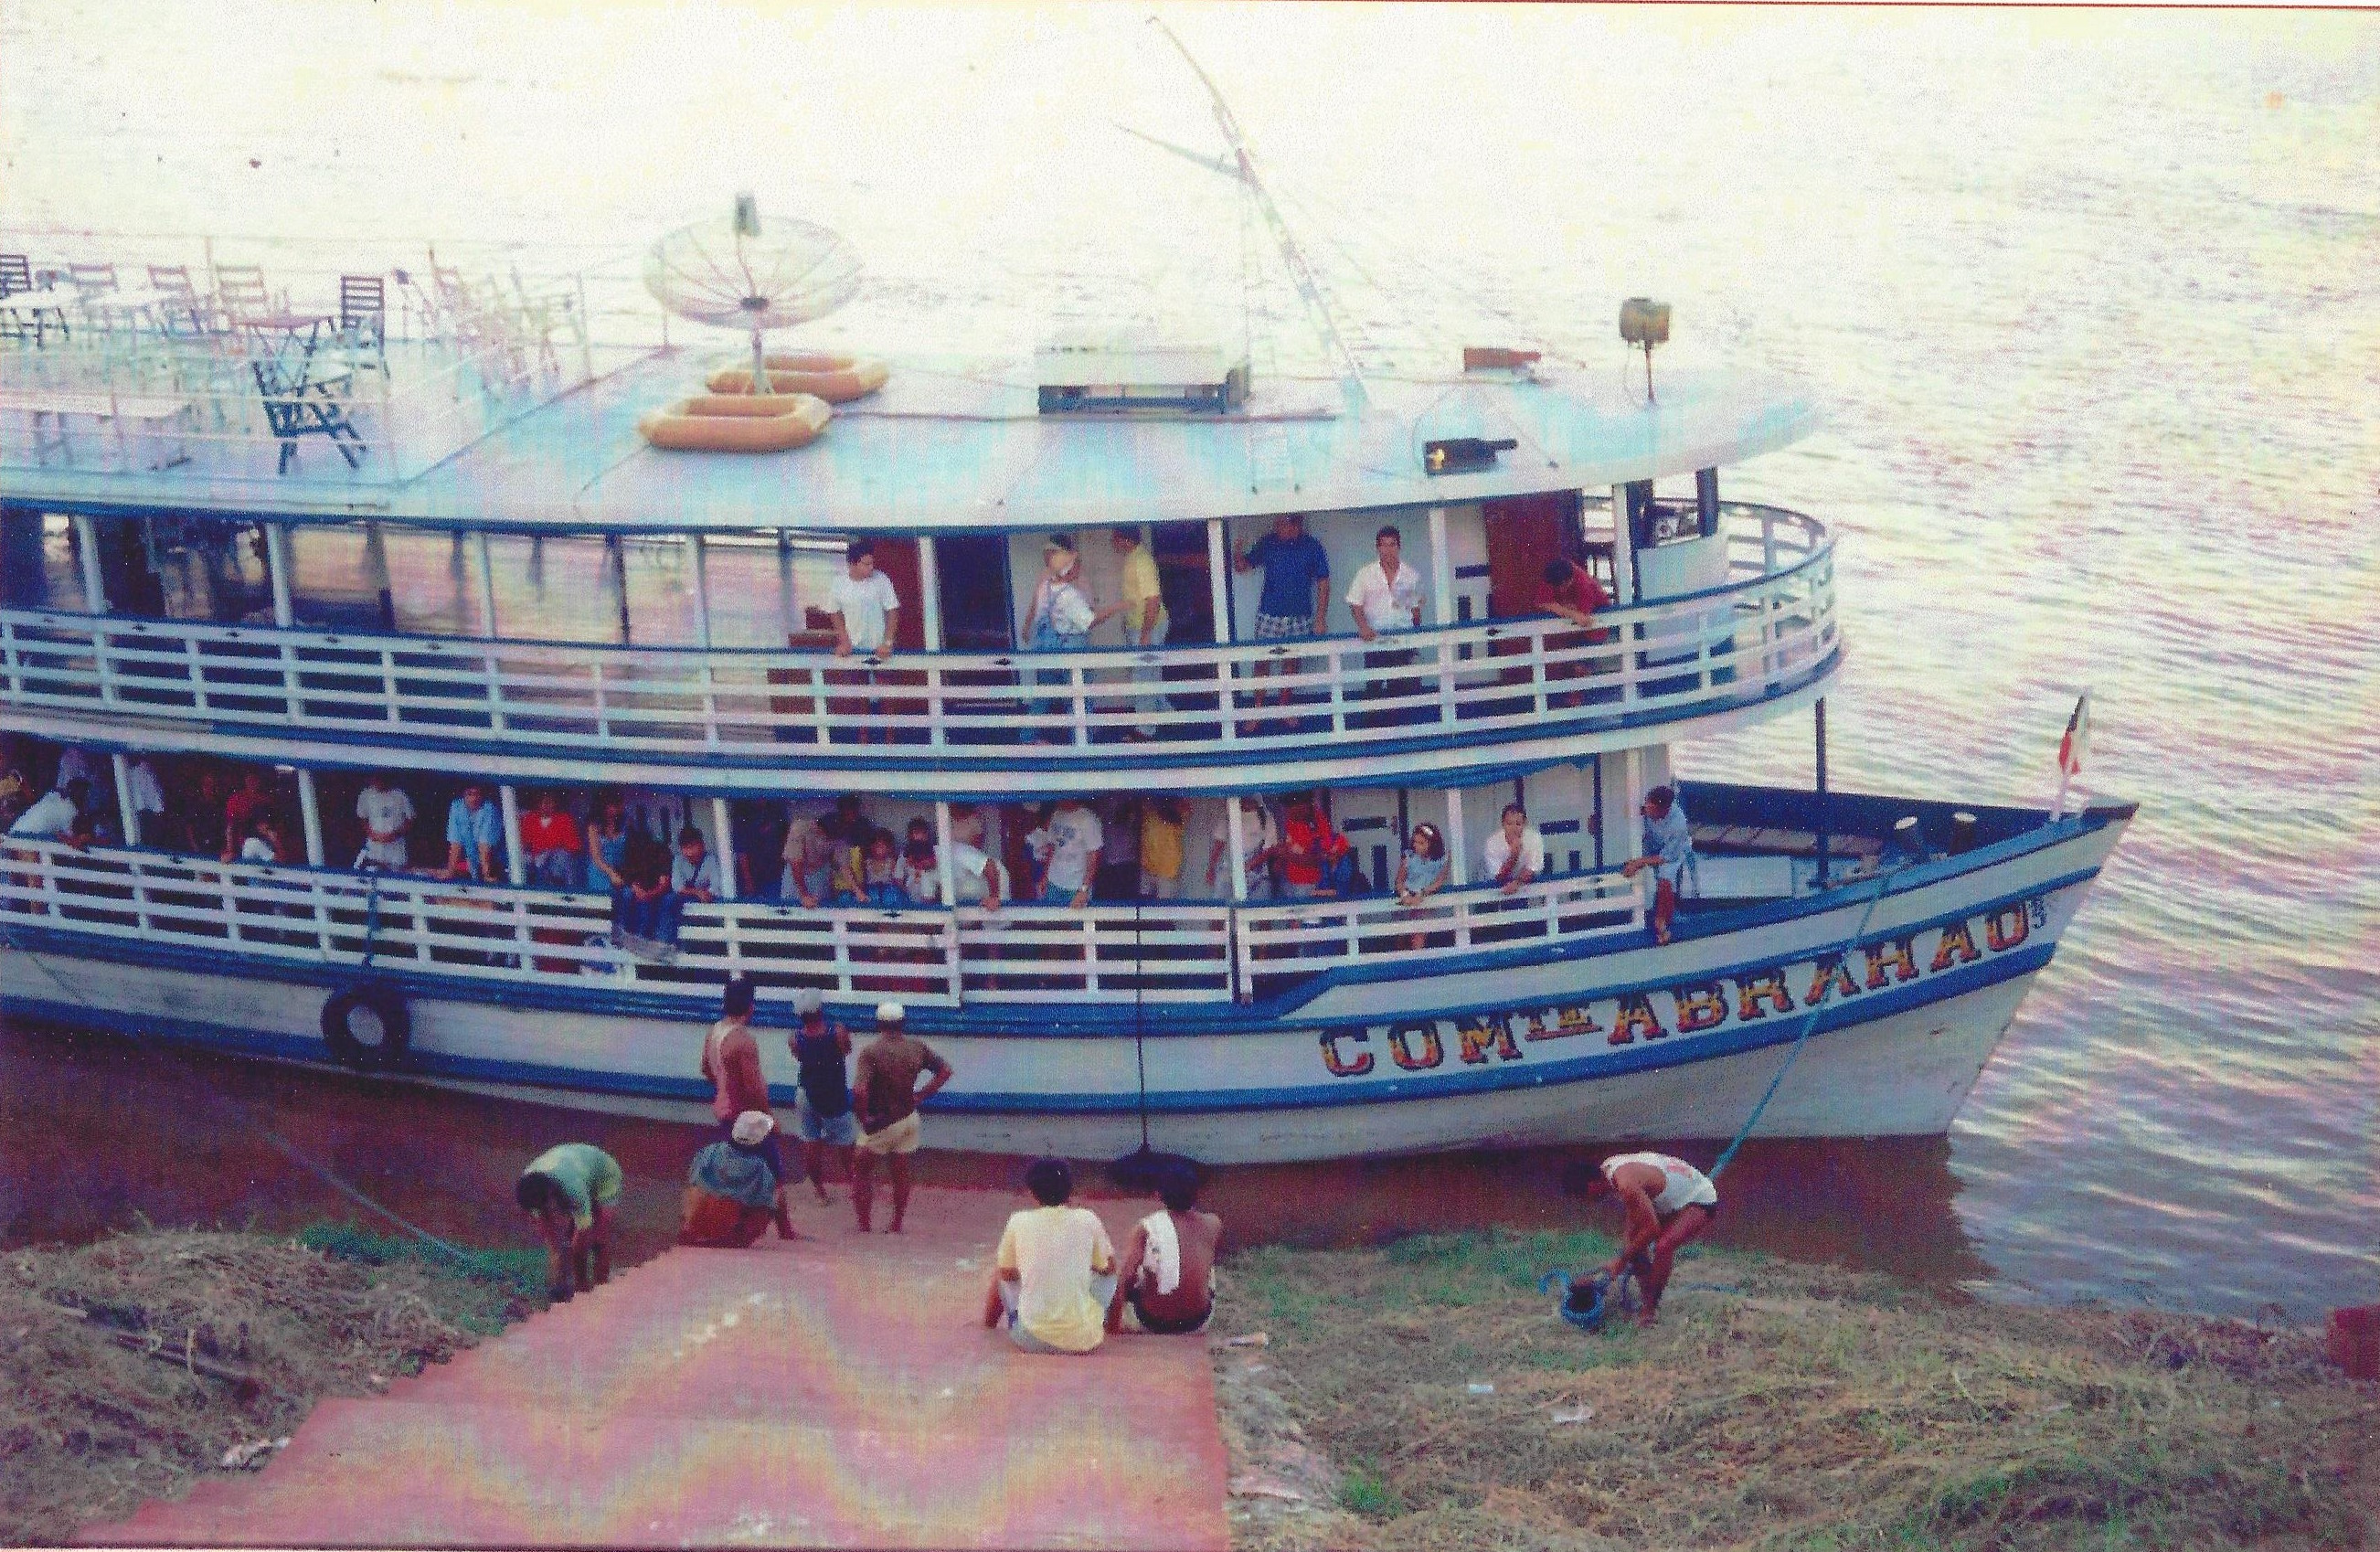 """Church members from Manaus rode the """"Comandante Abrahao"""" for three days on Rio Negro and Rio Madeira on their November 1992 trip to the Sao Paulo Brazil Temple."""